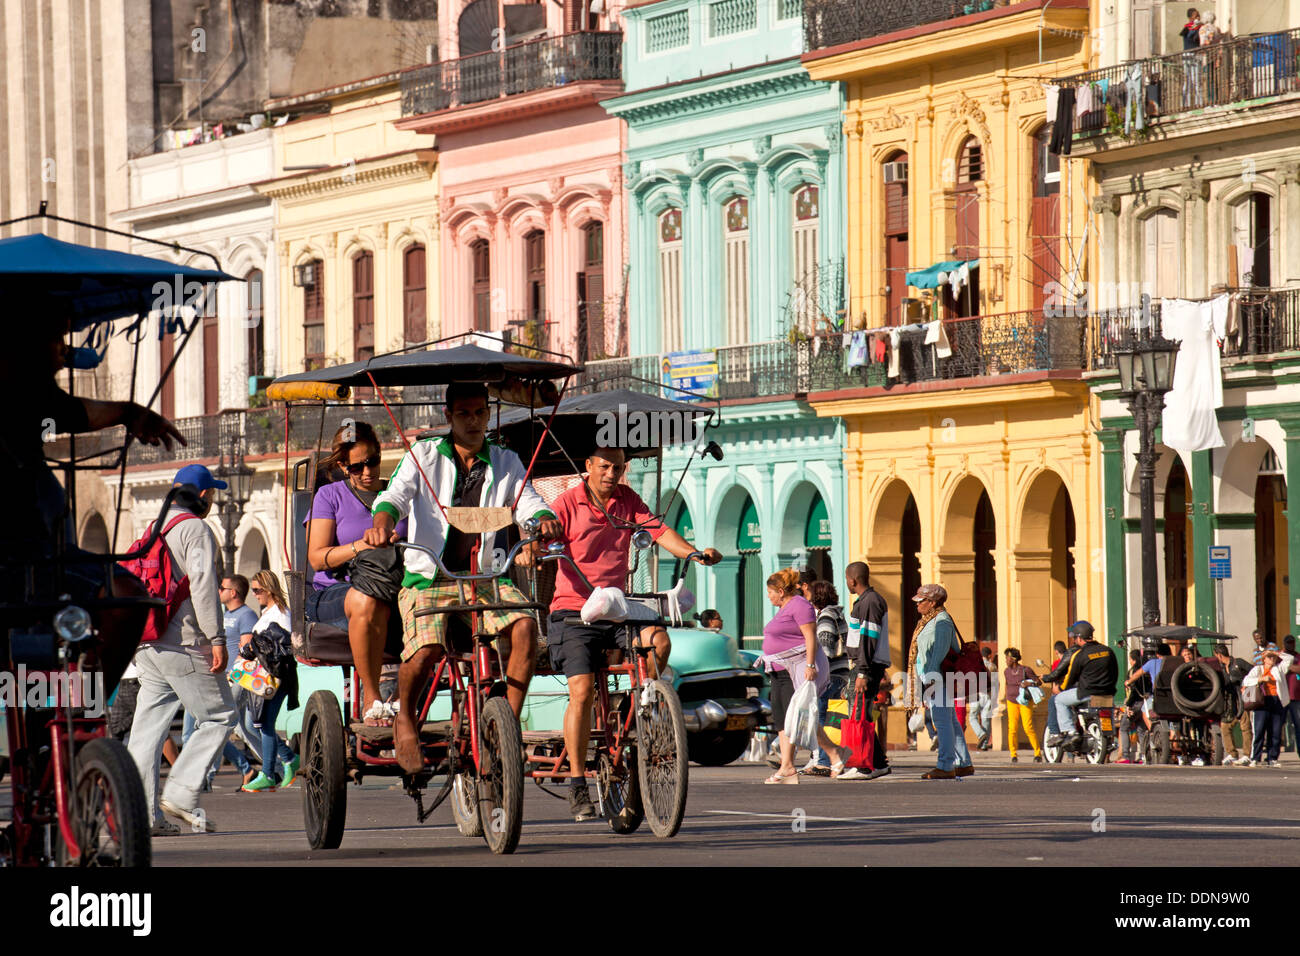 bicycle taxi and colourful buildings in central Havana, Cuba, Caribbean - Stock Image